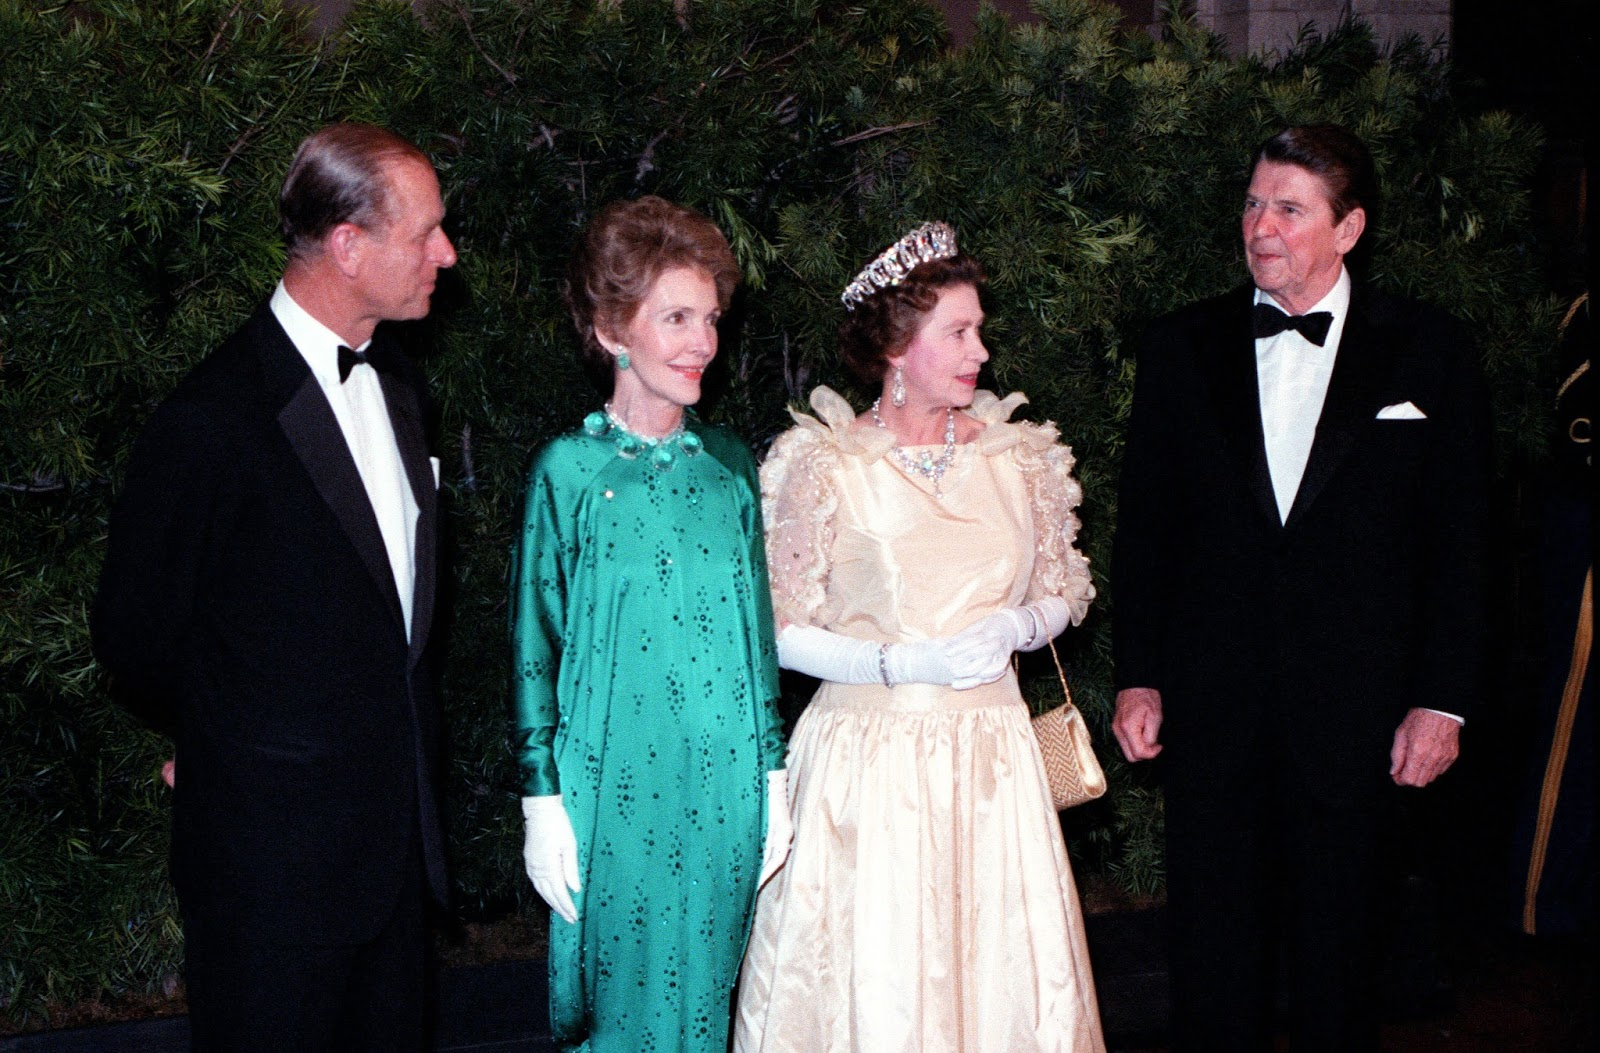 Queens of England: Nancy Reagan - the First Lady and Royalty